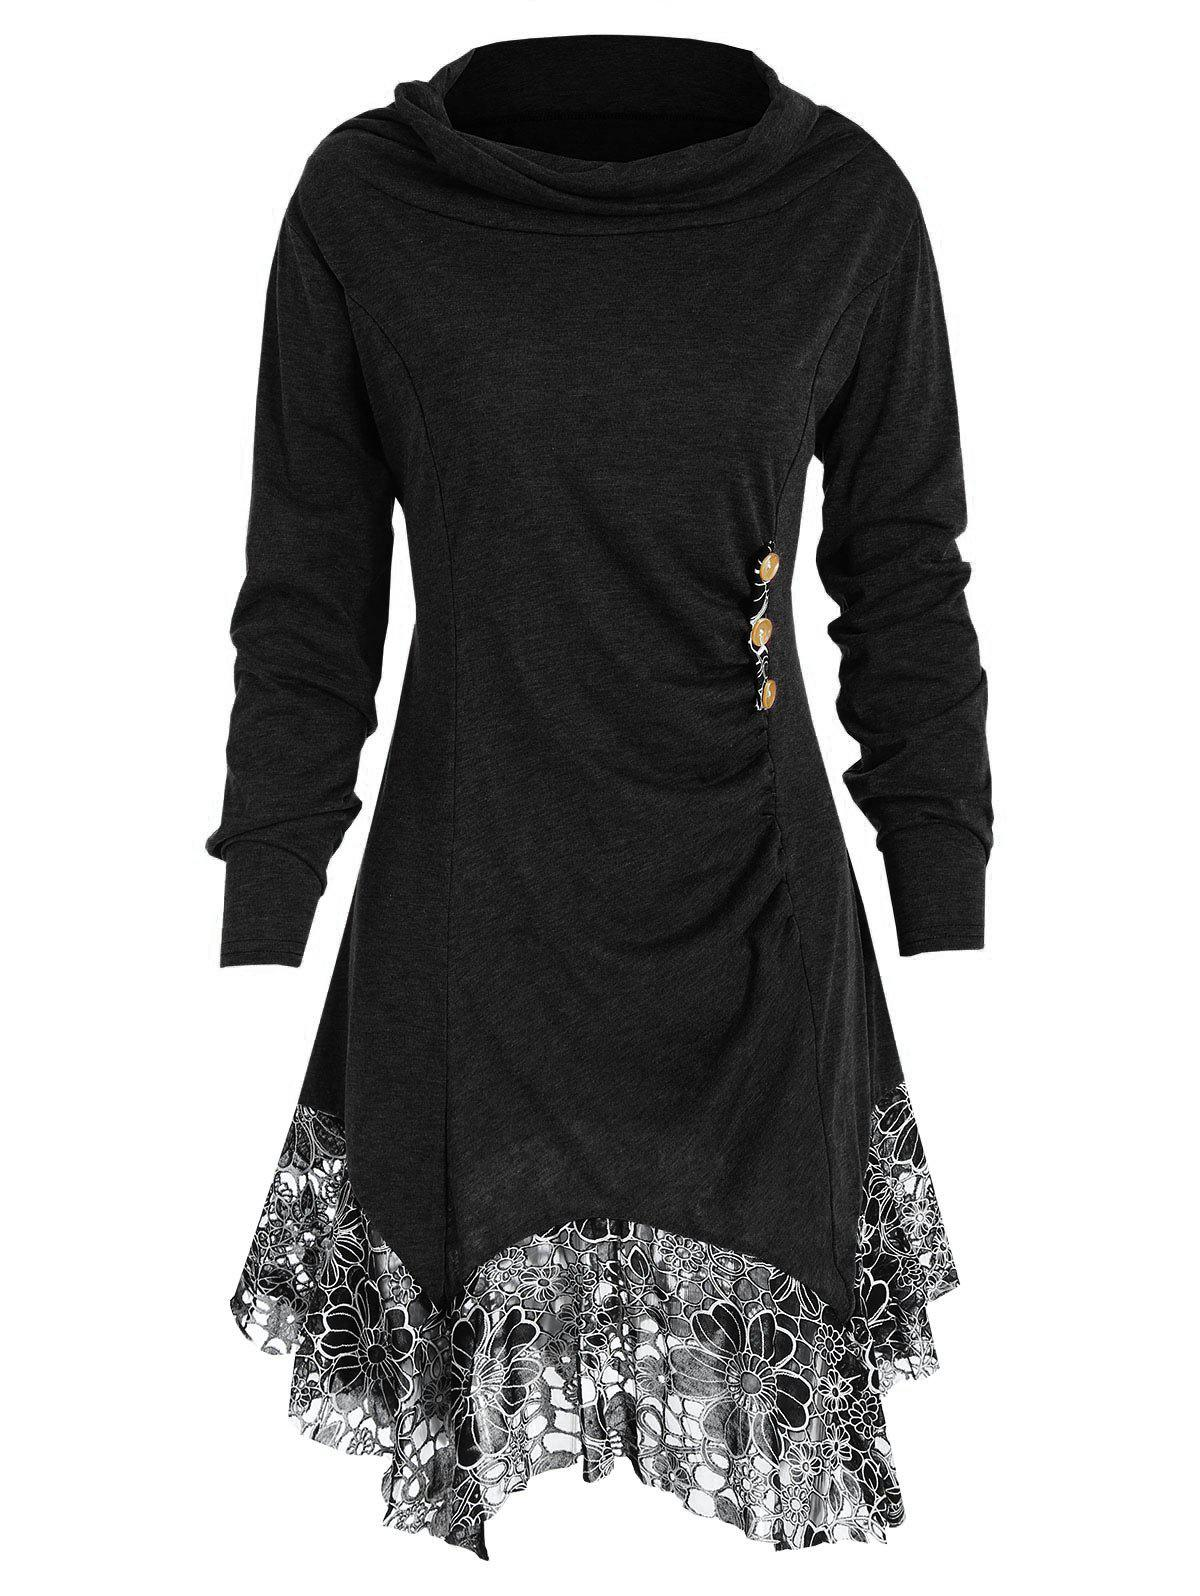 Long Sleeve Lace Trim Tunic T-shirt - BLACK XL